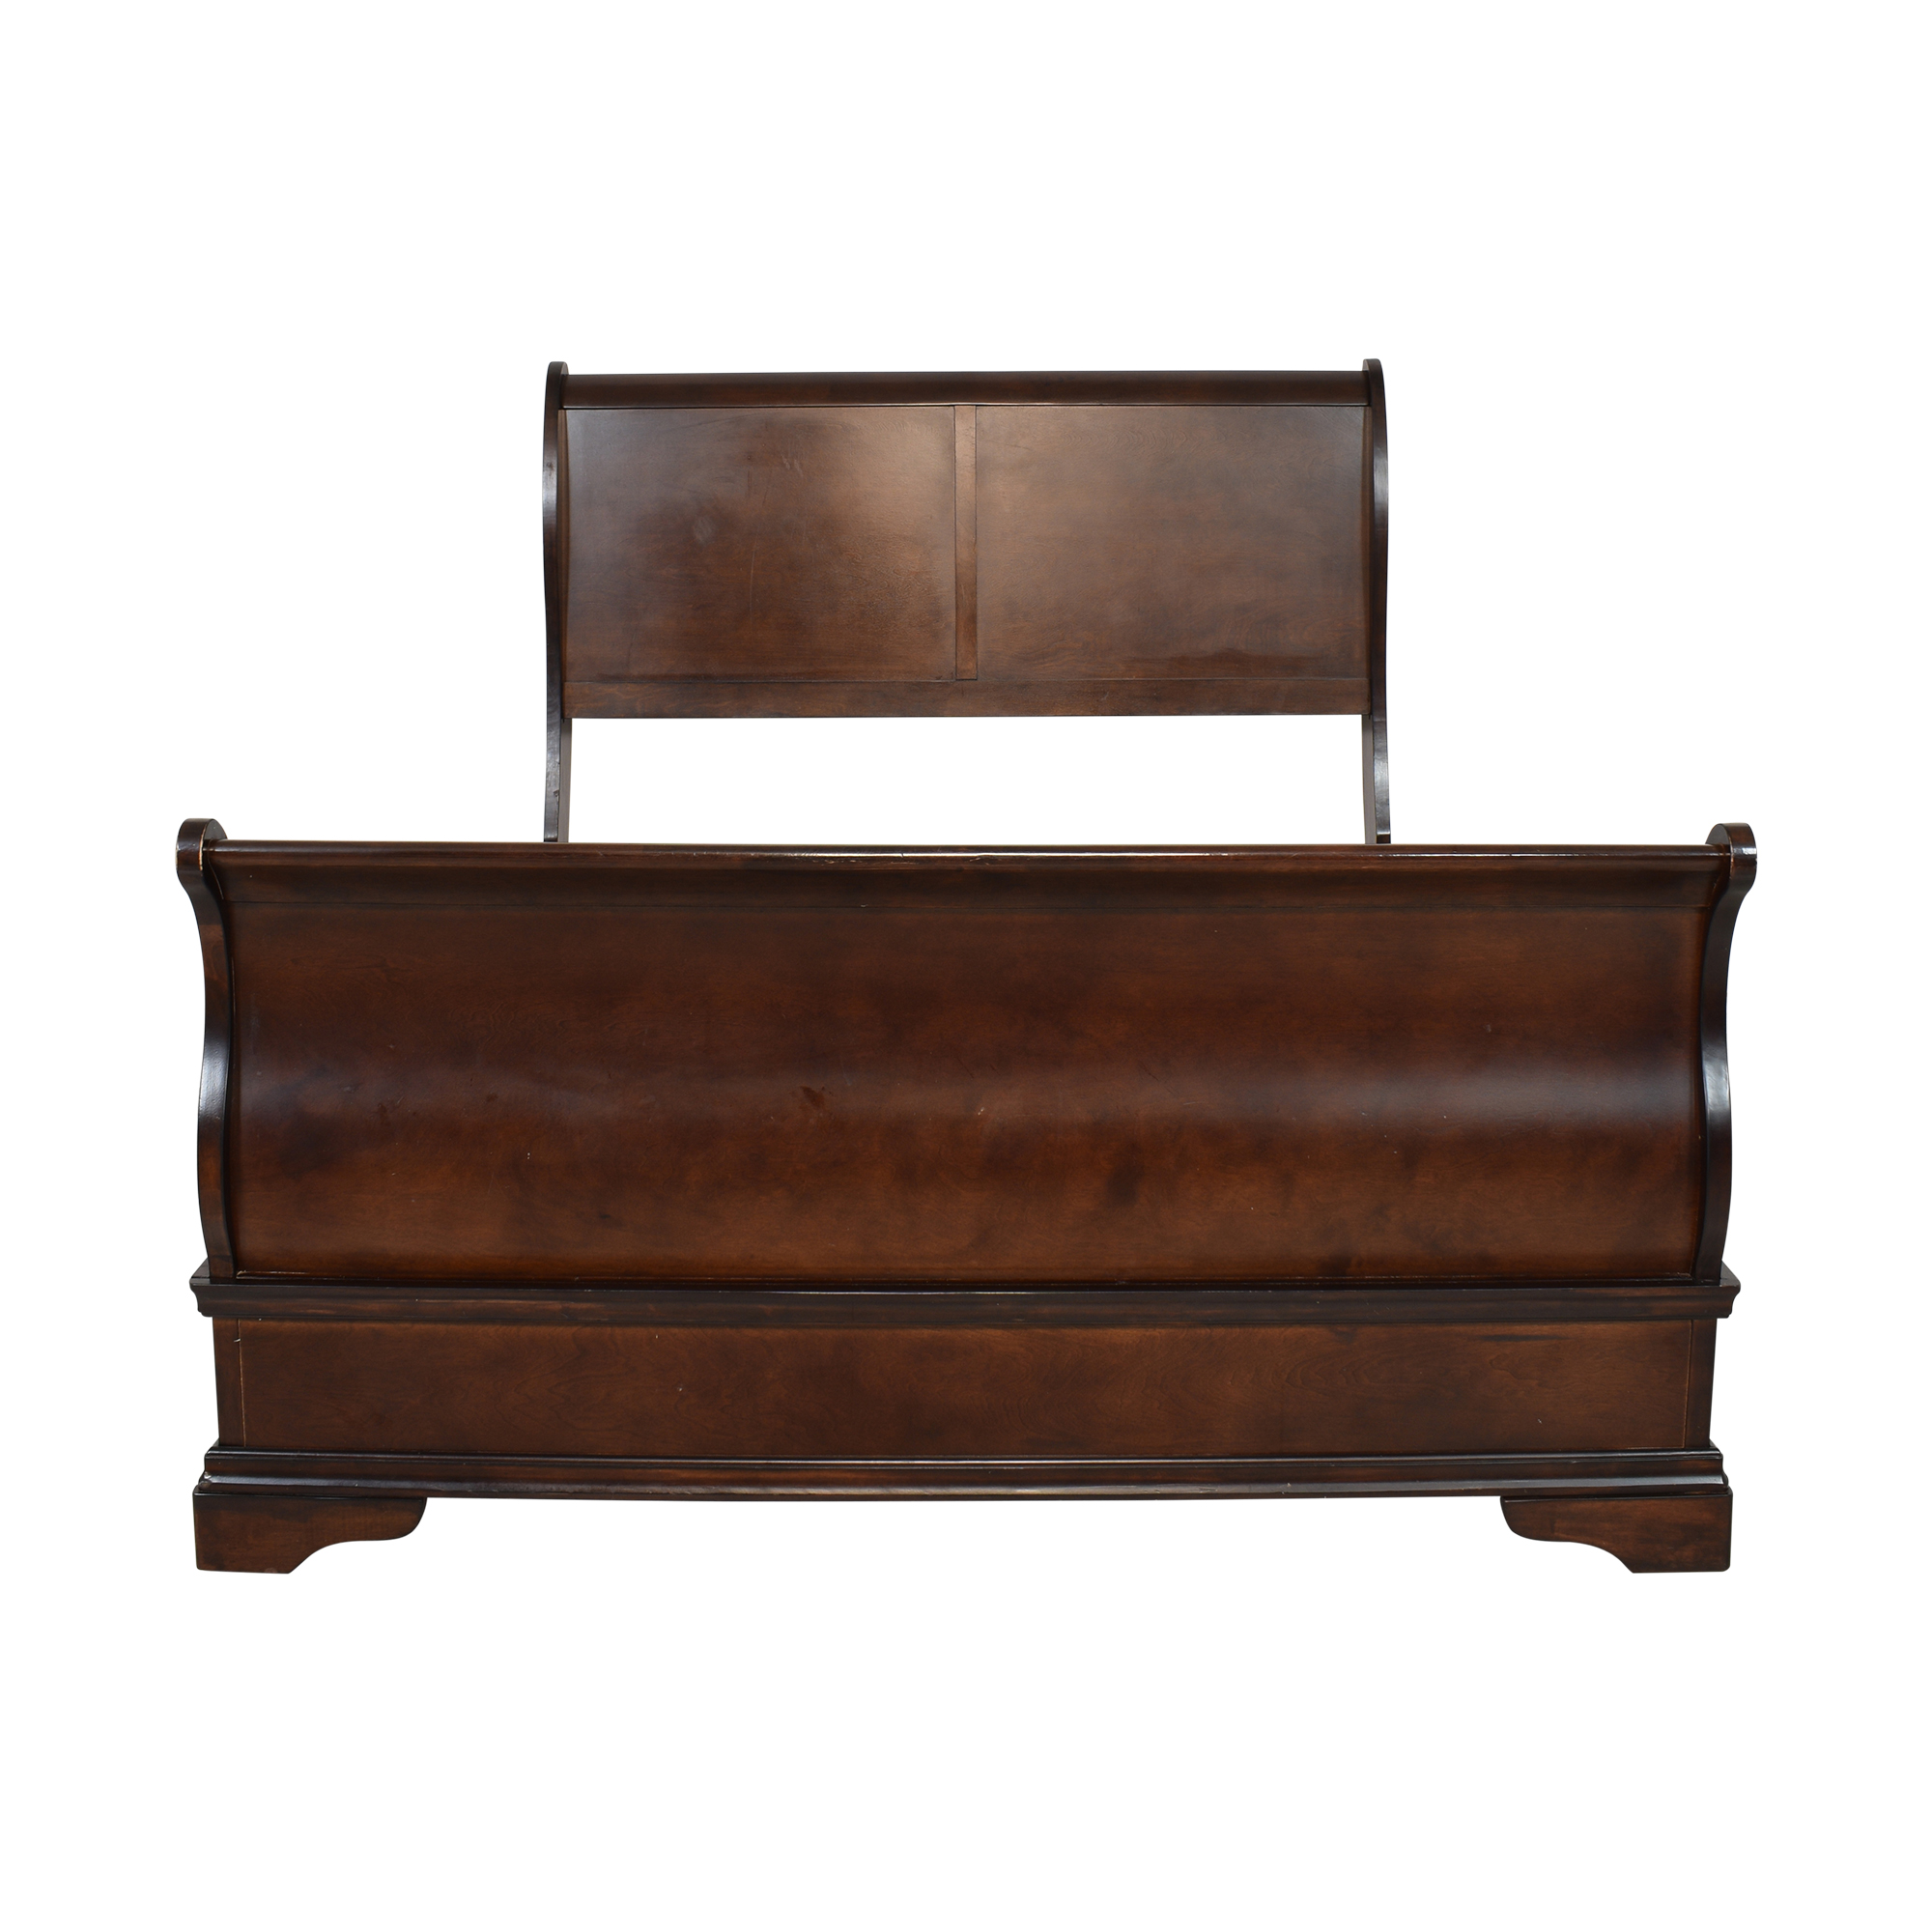 Raymour & Flanigan Raymour & Flanigan Queen Bed Beds